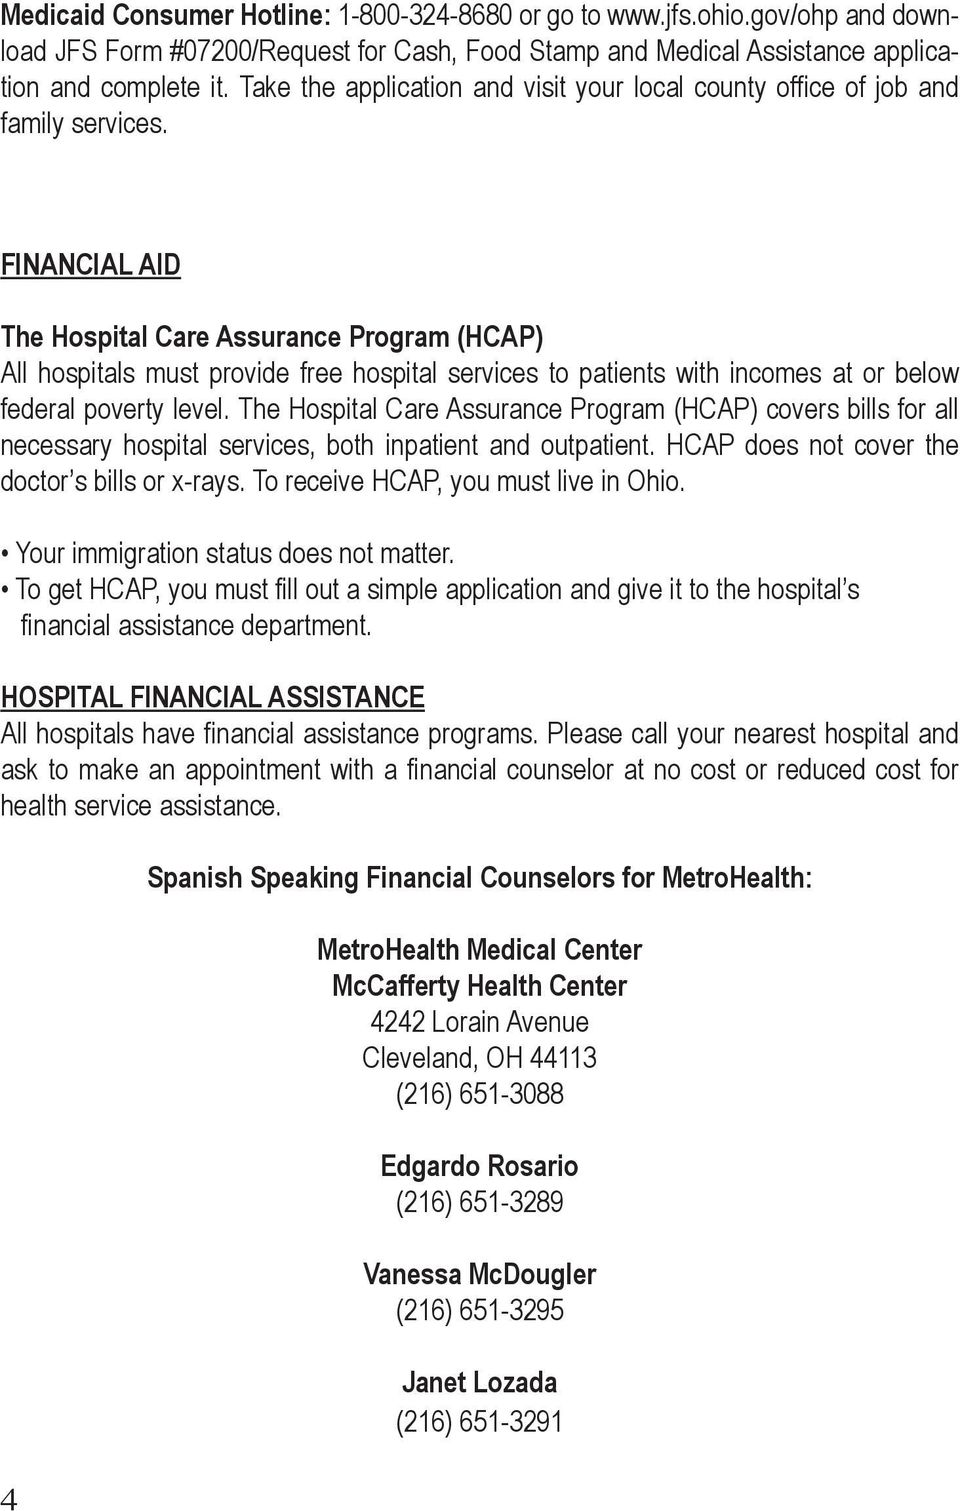 Financial Aid The Hospital Care Assurance Program (HCAP) All hospitals must provide free hospital services to patients with incomes at or below federal poverty level.